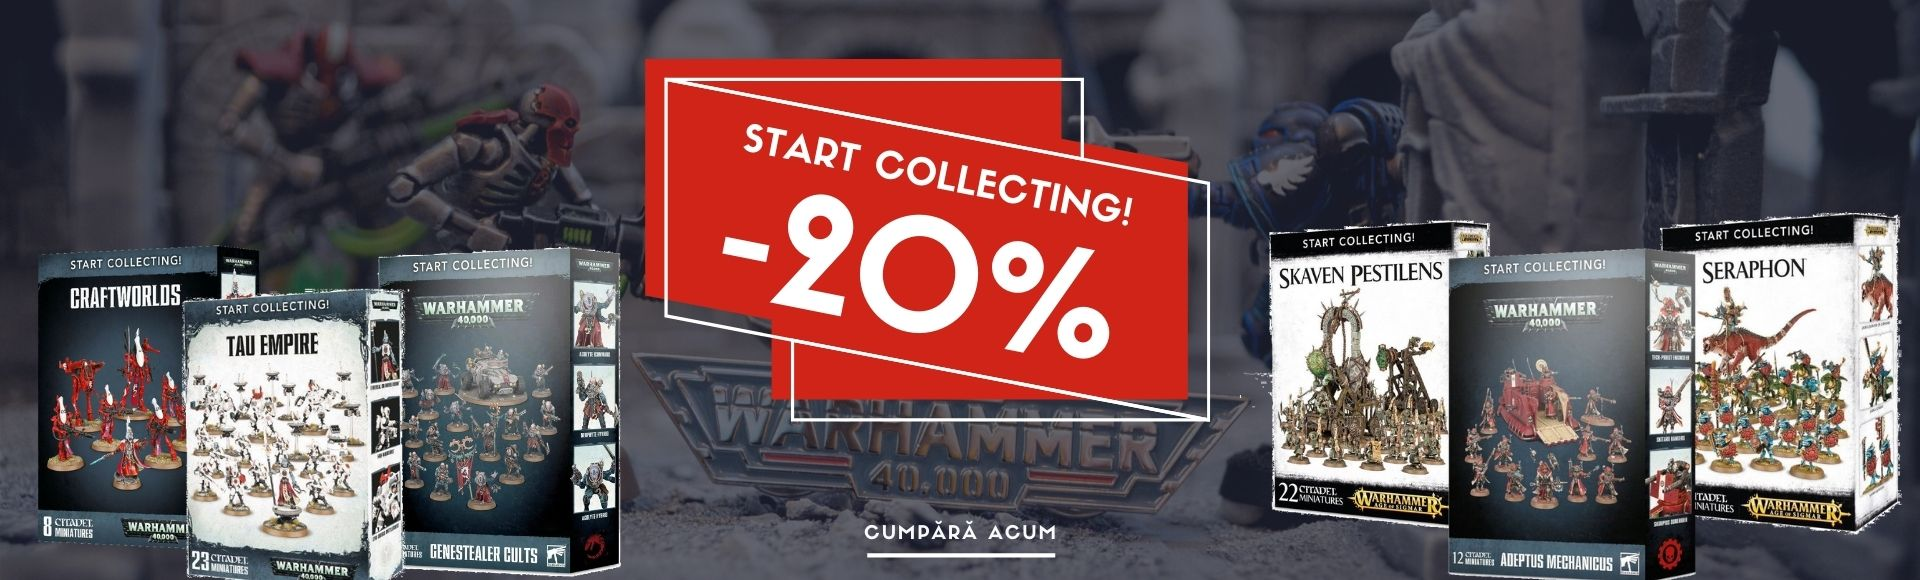 [40] Start collecting! 20% off promo